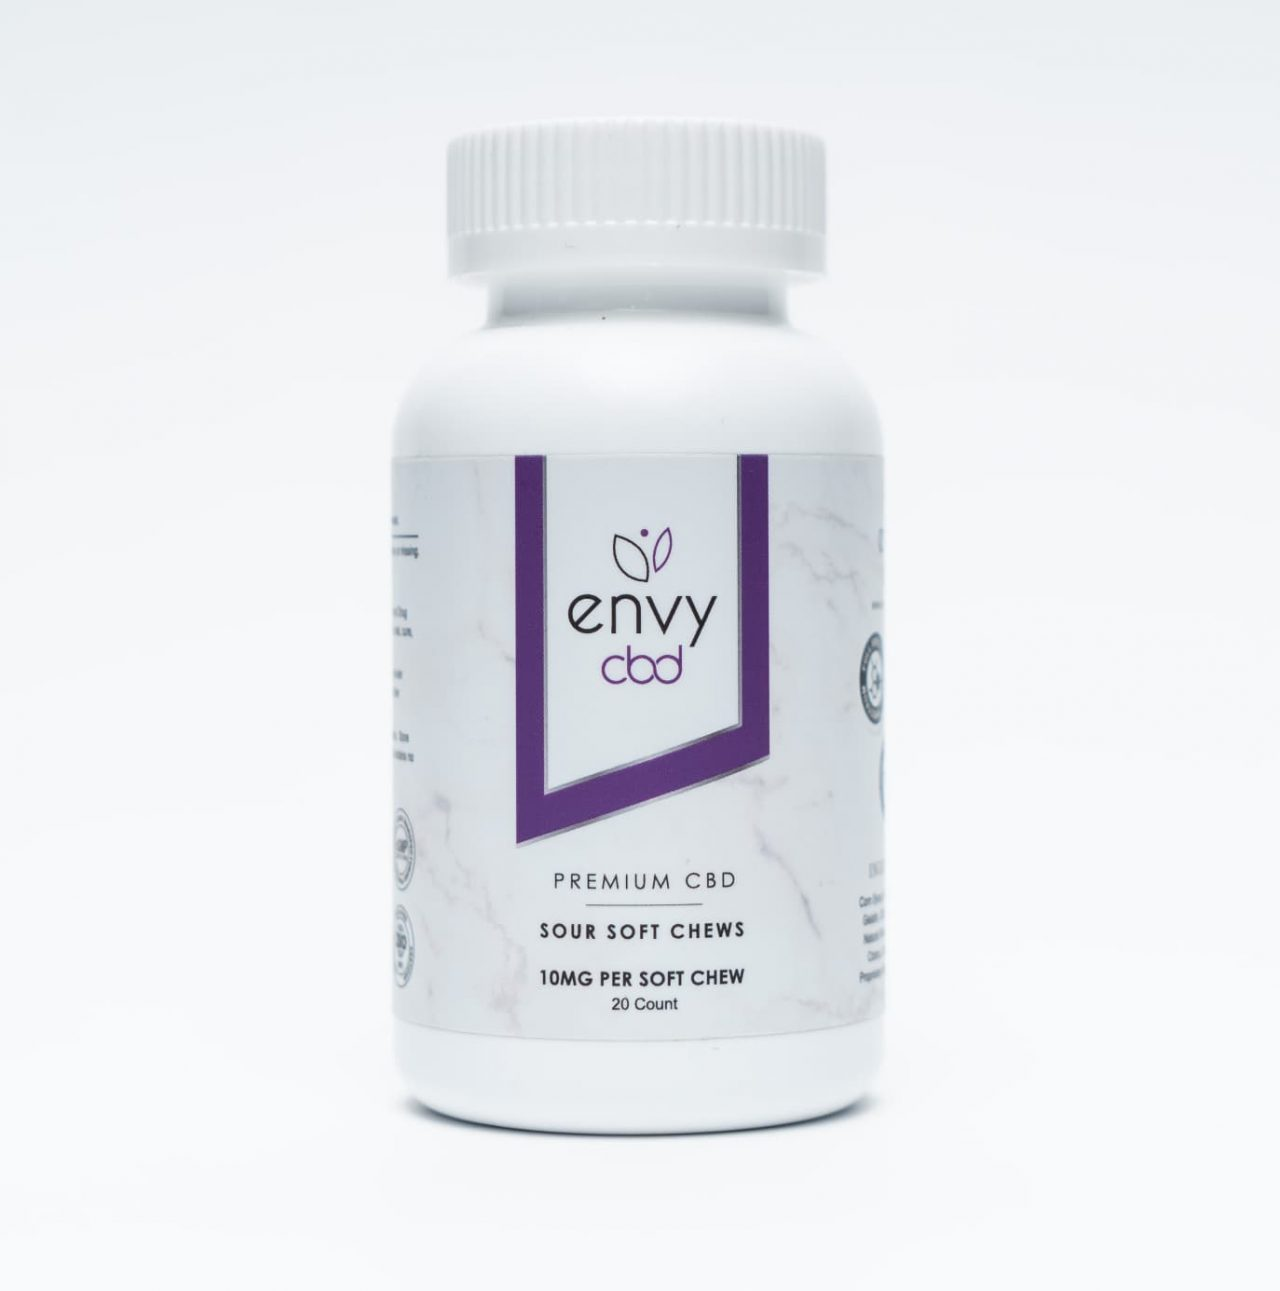 envy-cbd-cbd-gummies-sour-20-count-200mg-of-cbd